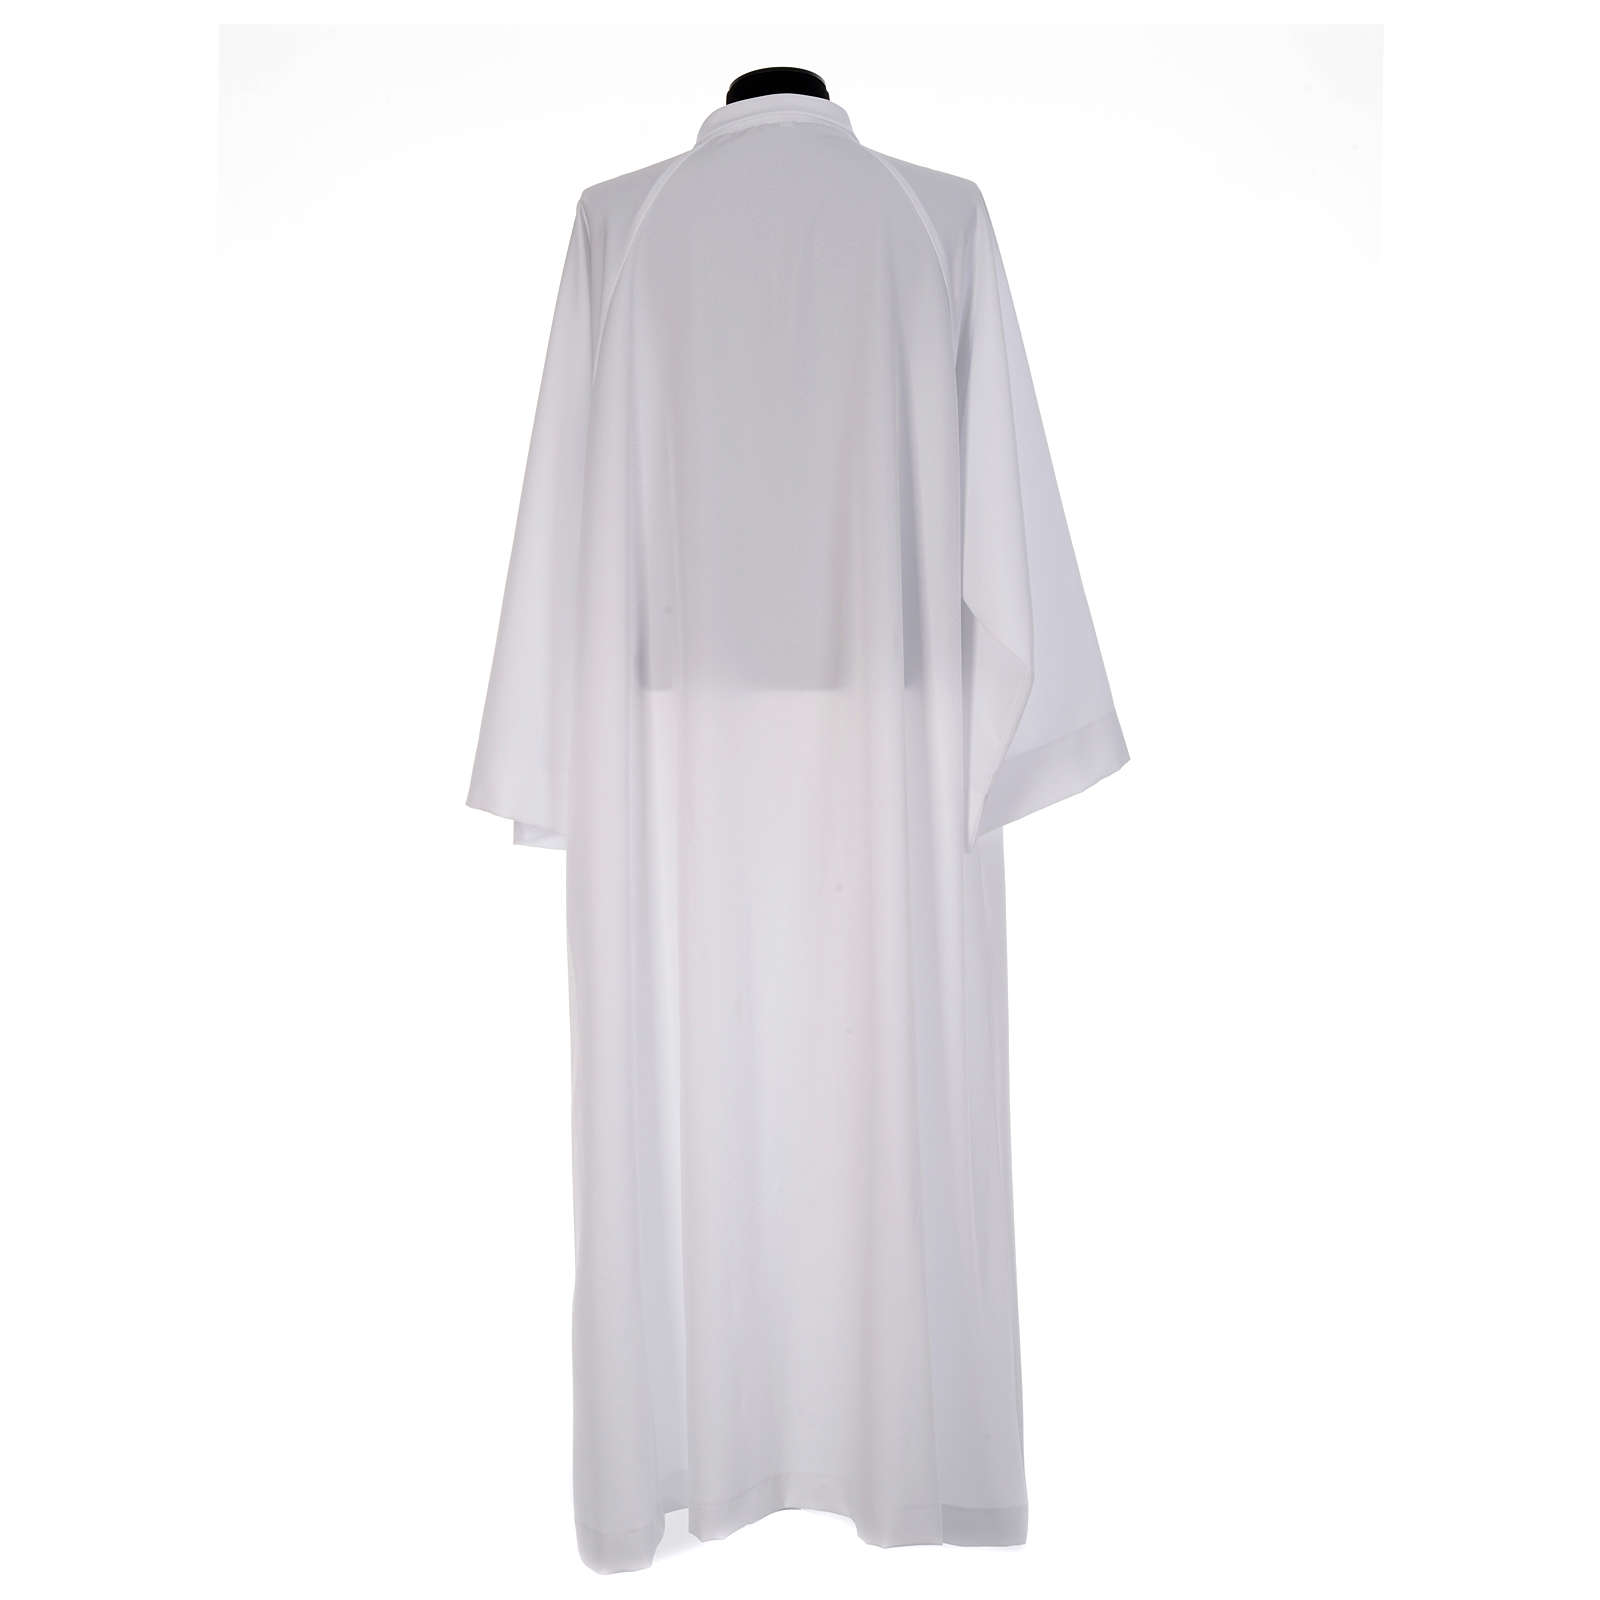 First Communion alb, flared with raglan sleeve in 100% polyester 4